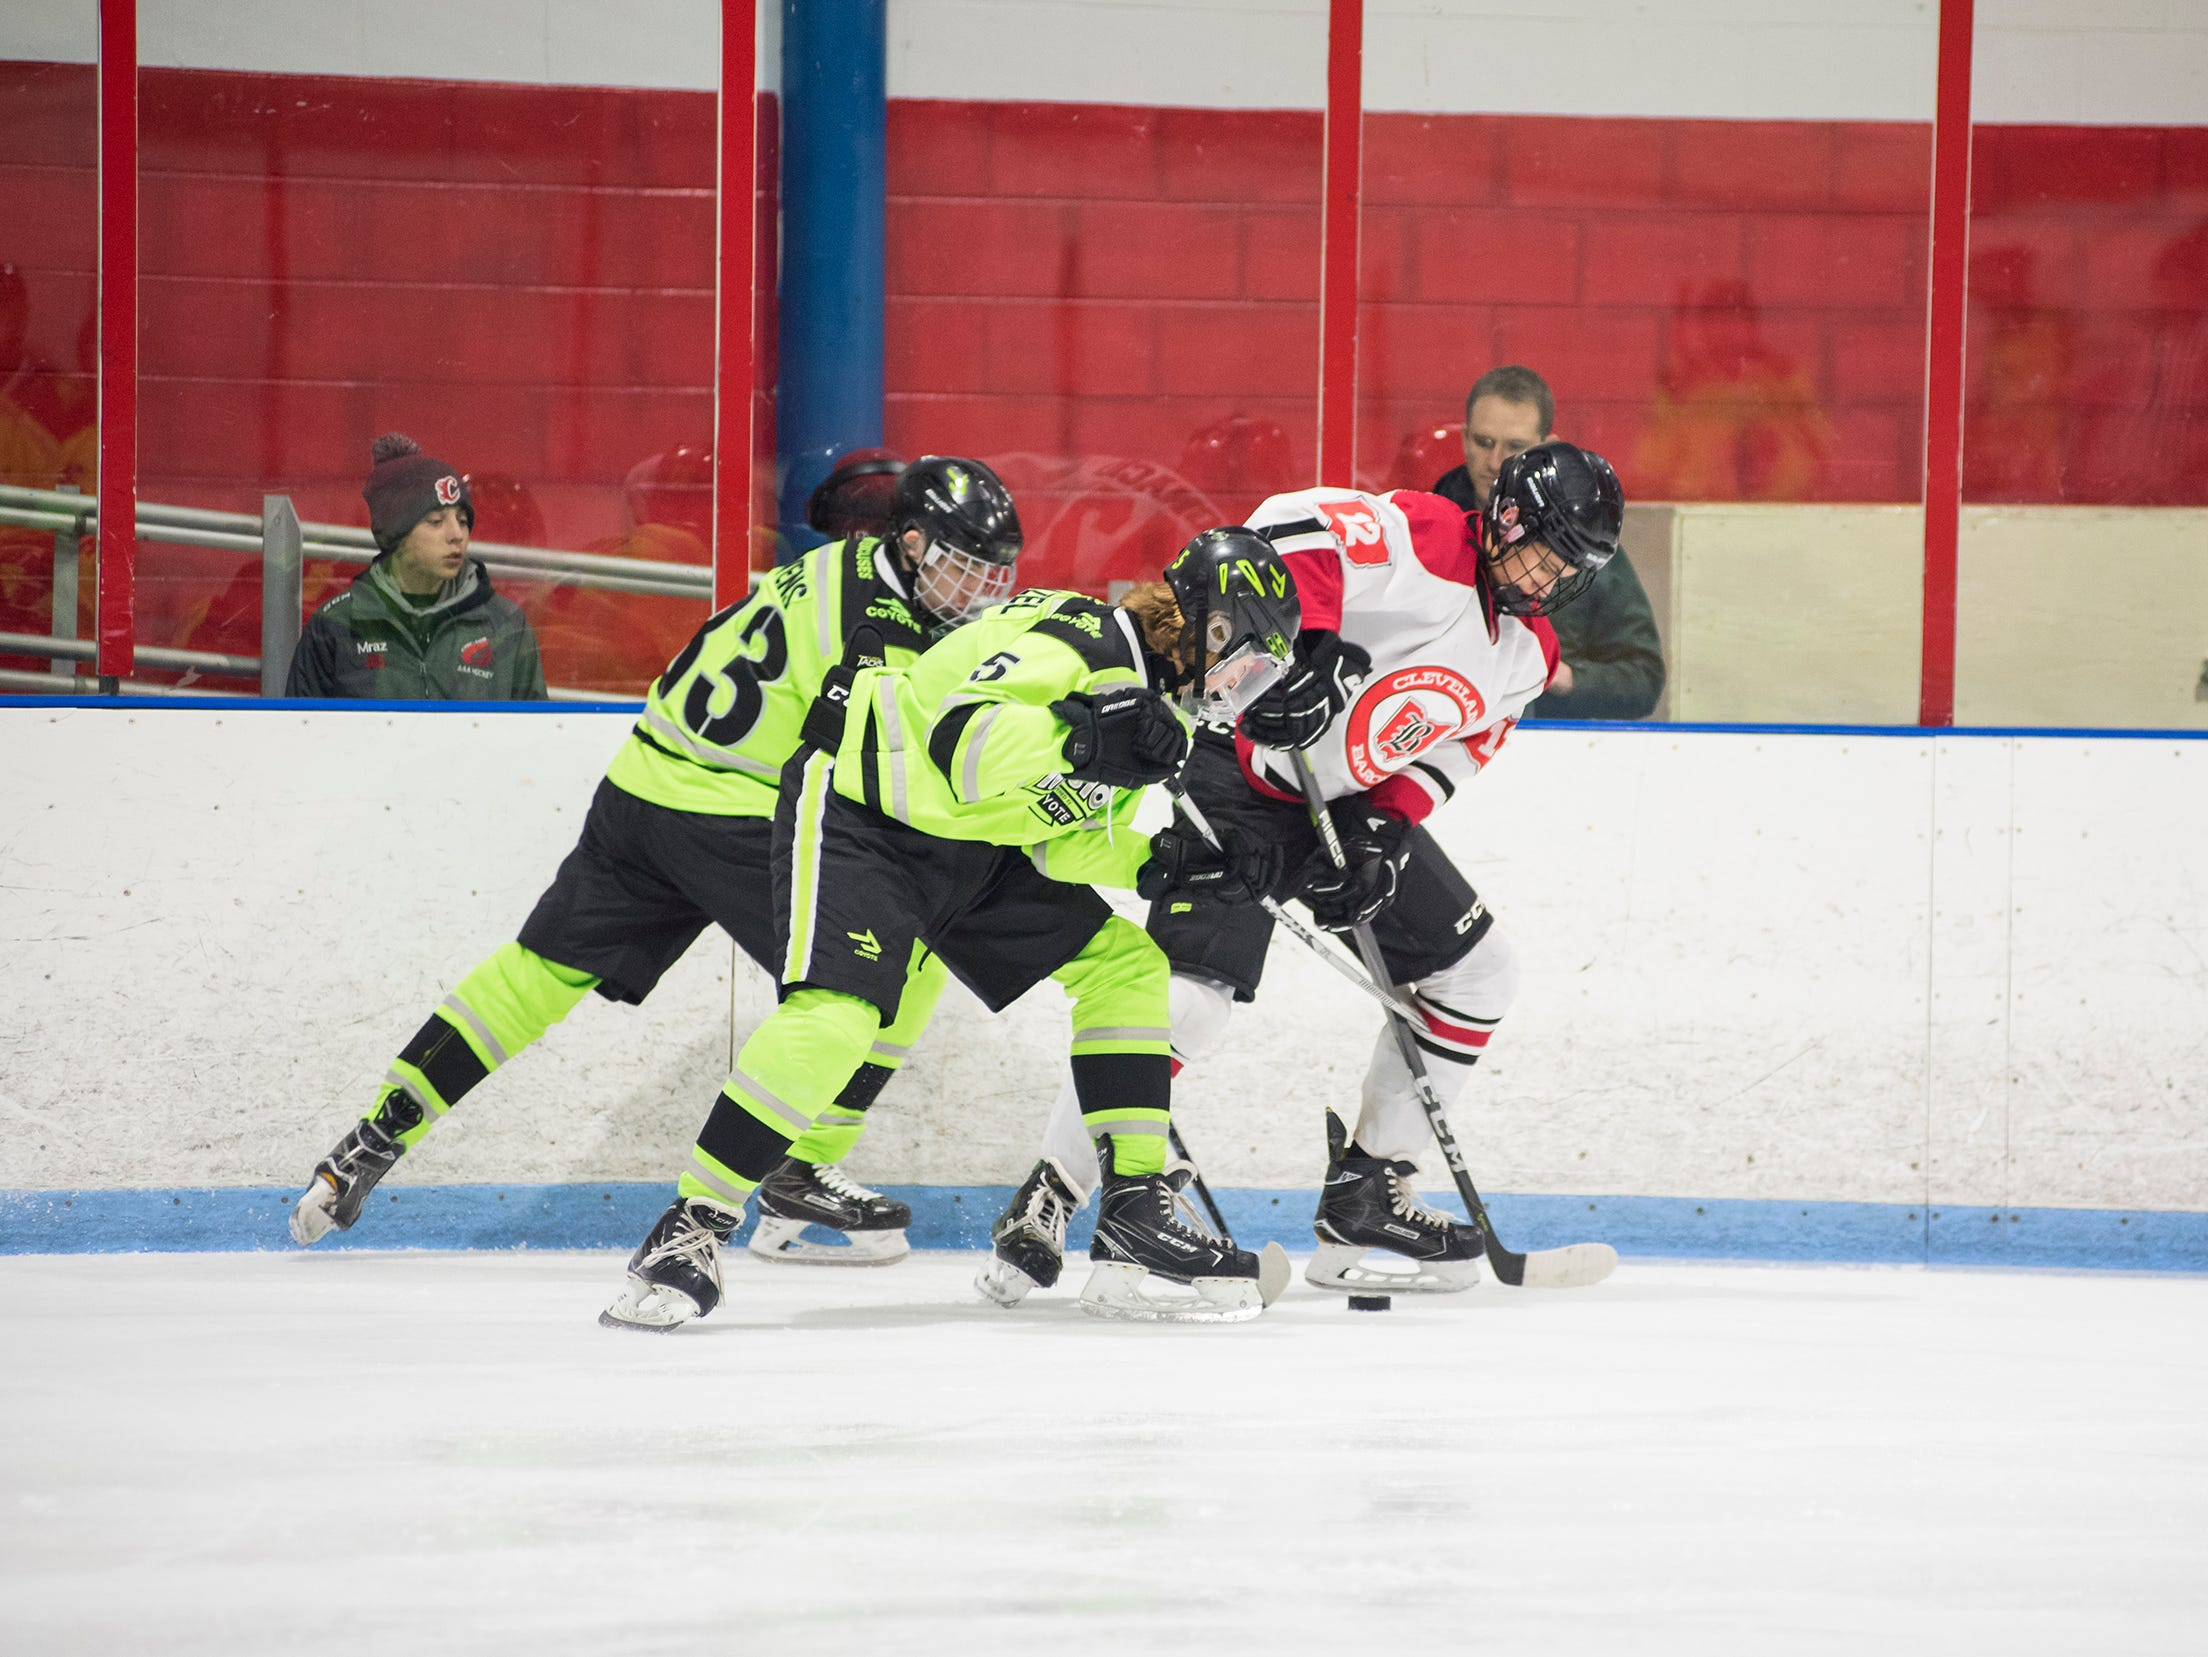 Chicago Mission defensman Zachary Frenzel (5), forward Raymond Owens (33) and Cleveland Barons Elite forward Alec Ignacio battle for the puck during their BAAA-C Silver Stick Finals match Friday, Jan. 4, 2019 at Glacier Pointe Ice Complex.